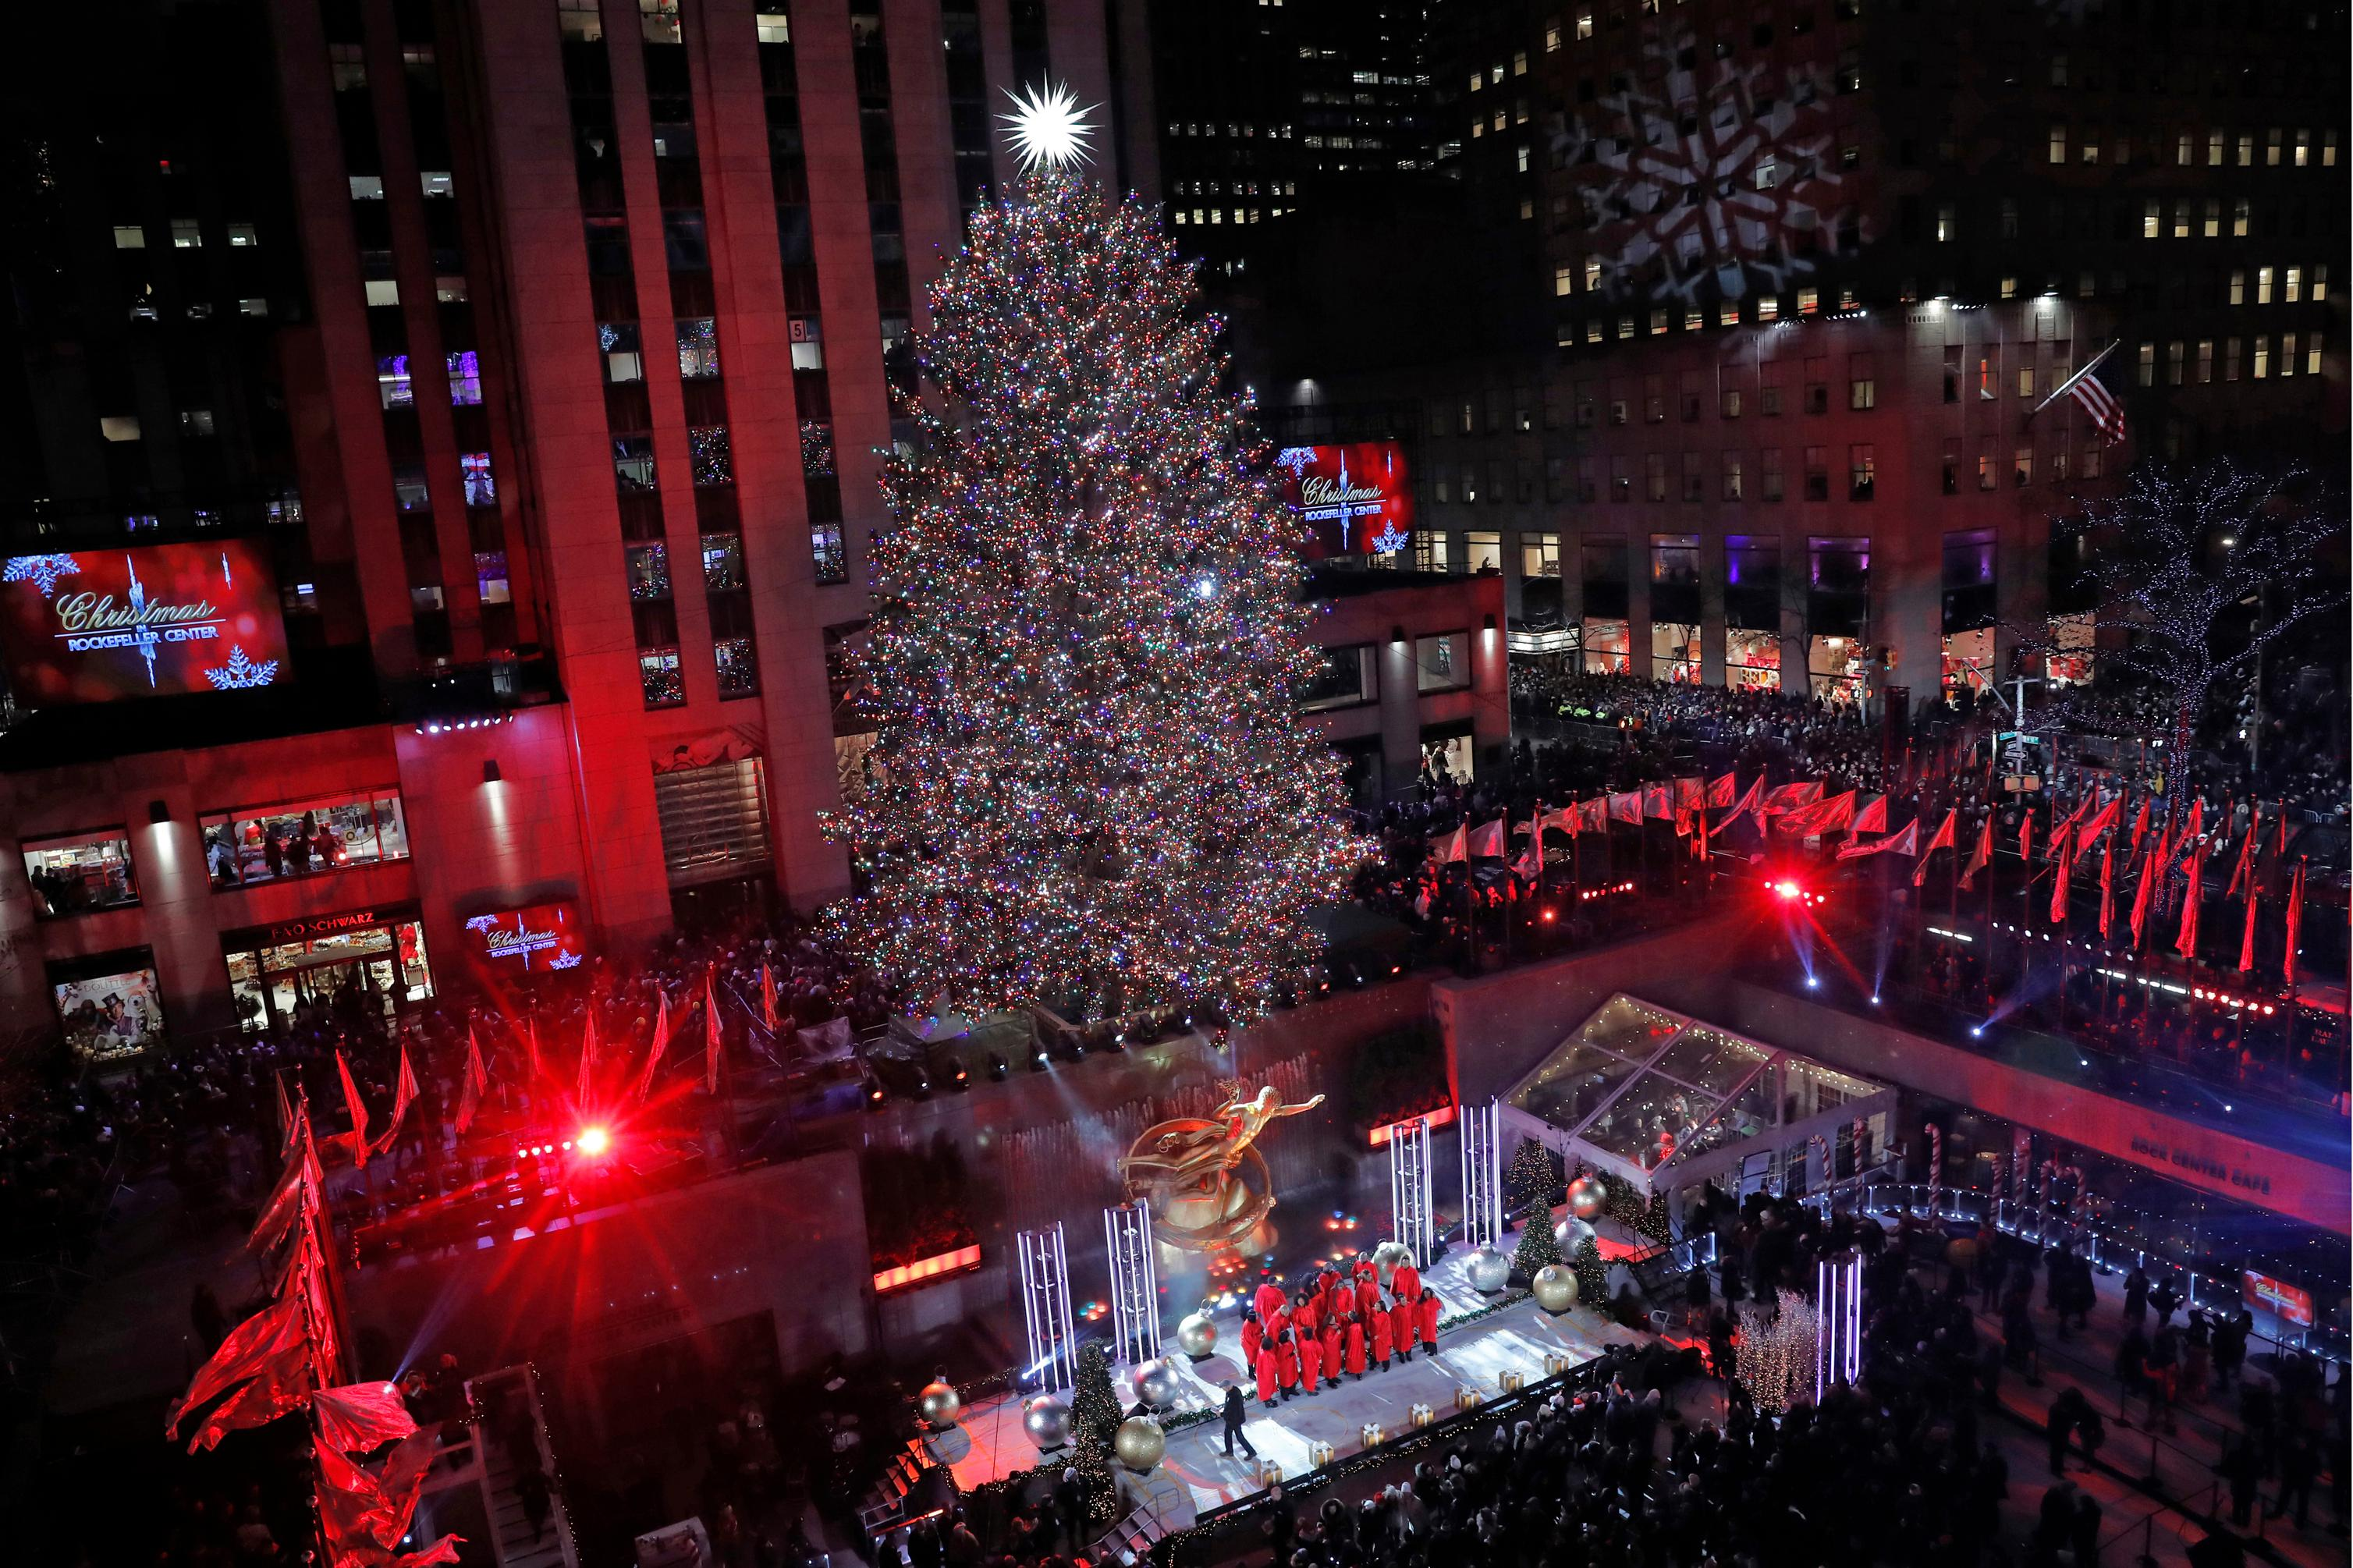 Singers gather on a stage beneath the Rockefeller Center Christmas Tree after the 77-foot high tree was illuminated in the 87th annual tree lighting ceremony, Wednesday, Dec. 4, 2019, in New York. (AP Photo/Kathy Willens)